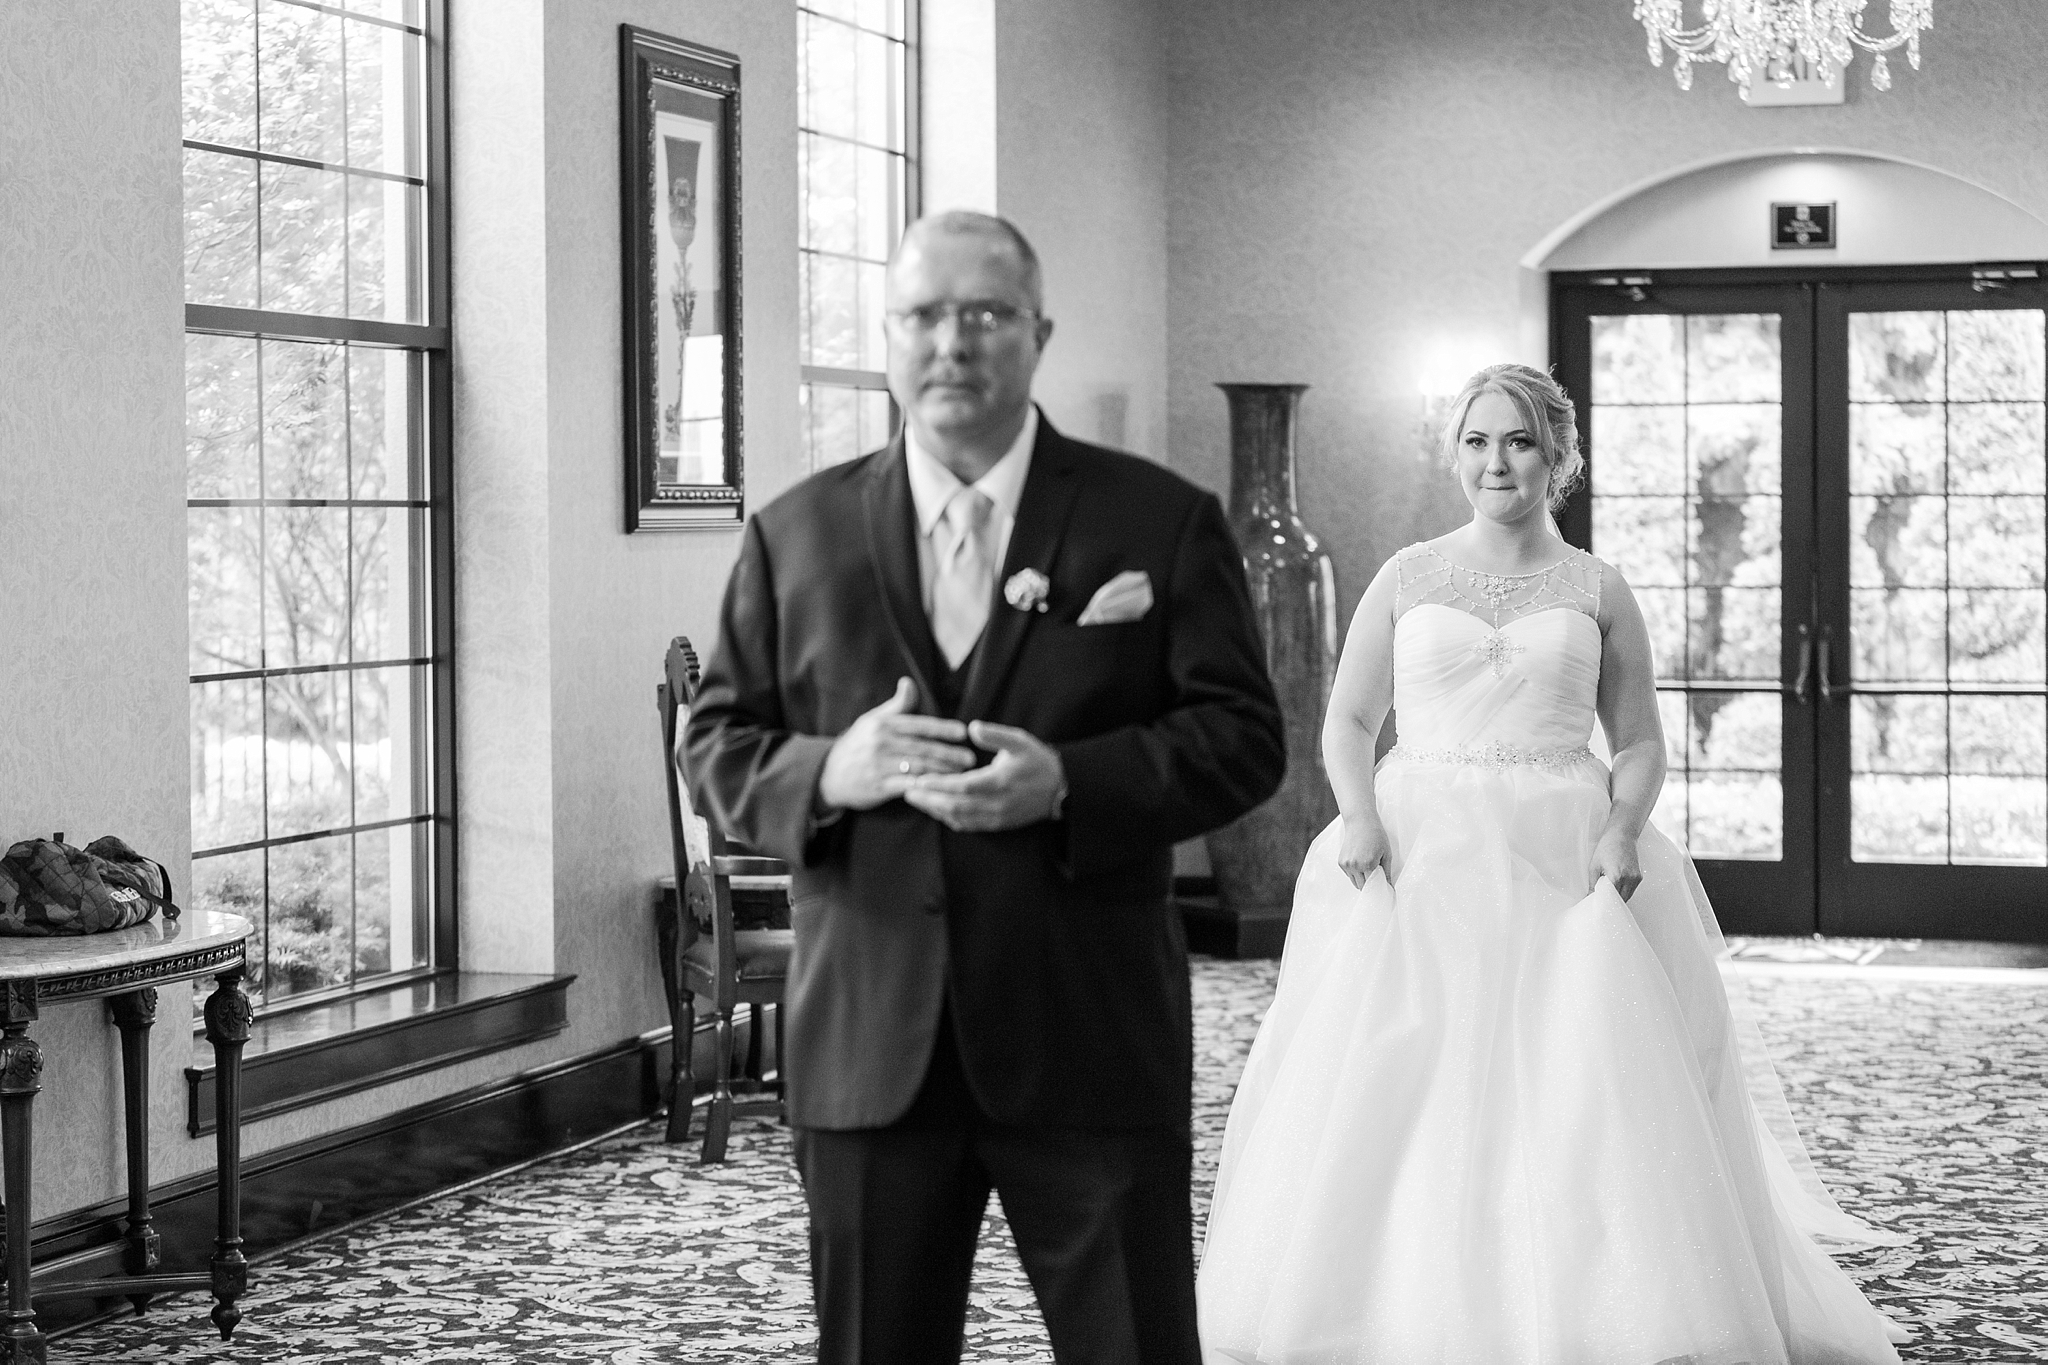 romantic-artful-candid-wedding-photos-in-detroit-lansing-ann-arbor-northern-michigan-and-chicago-by-courtney-carolyn-photography_0071.jpg